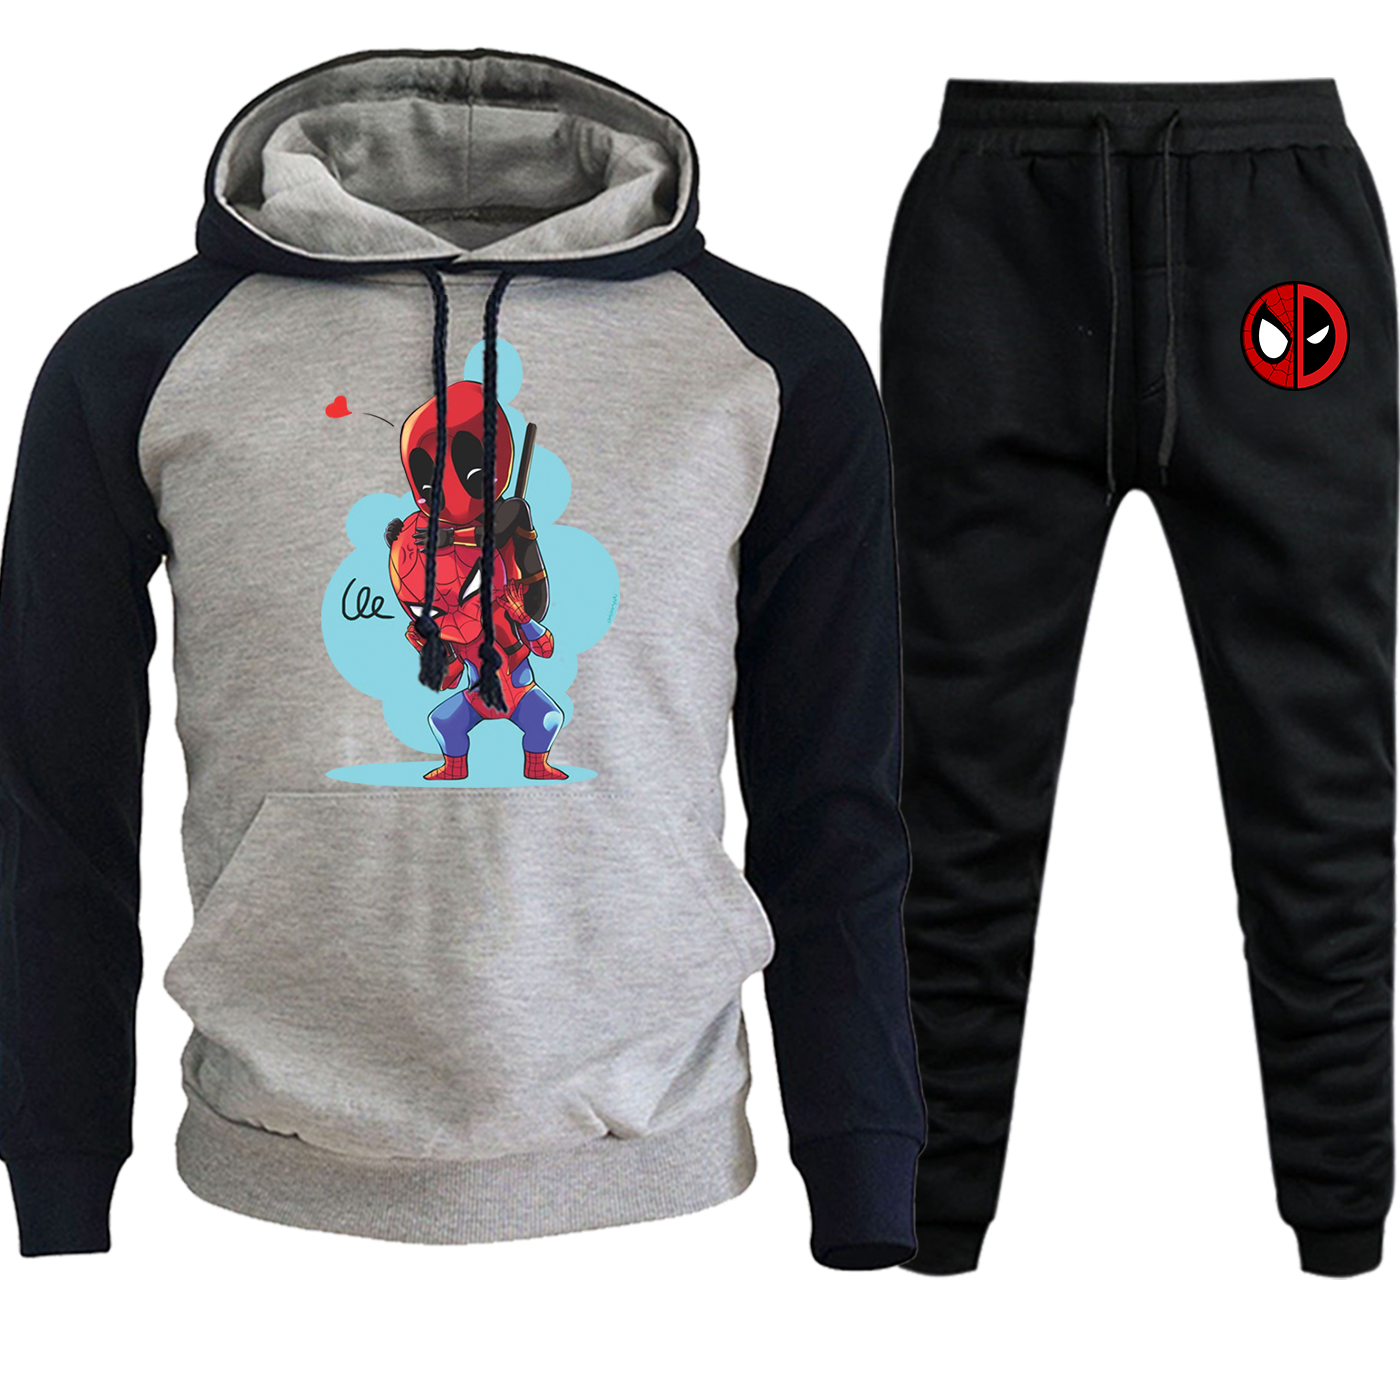 Spiderman And Deadpool Hooded Raglan Sweatshirts Autumn Hot Sale Marvel Suit Casual Pullover Fashion Hoodie+Pants 2 Piece Set